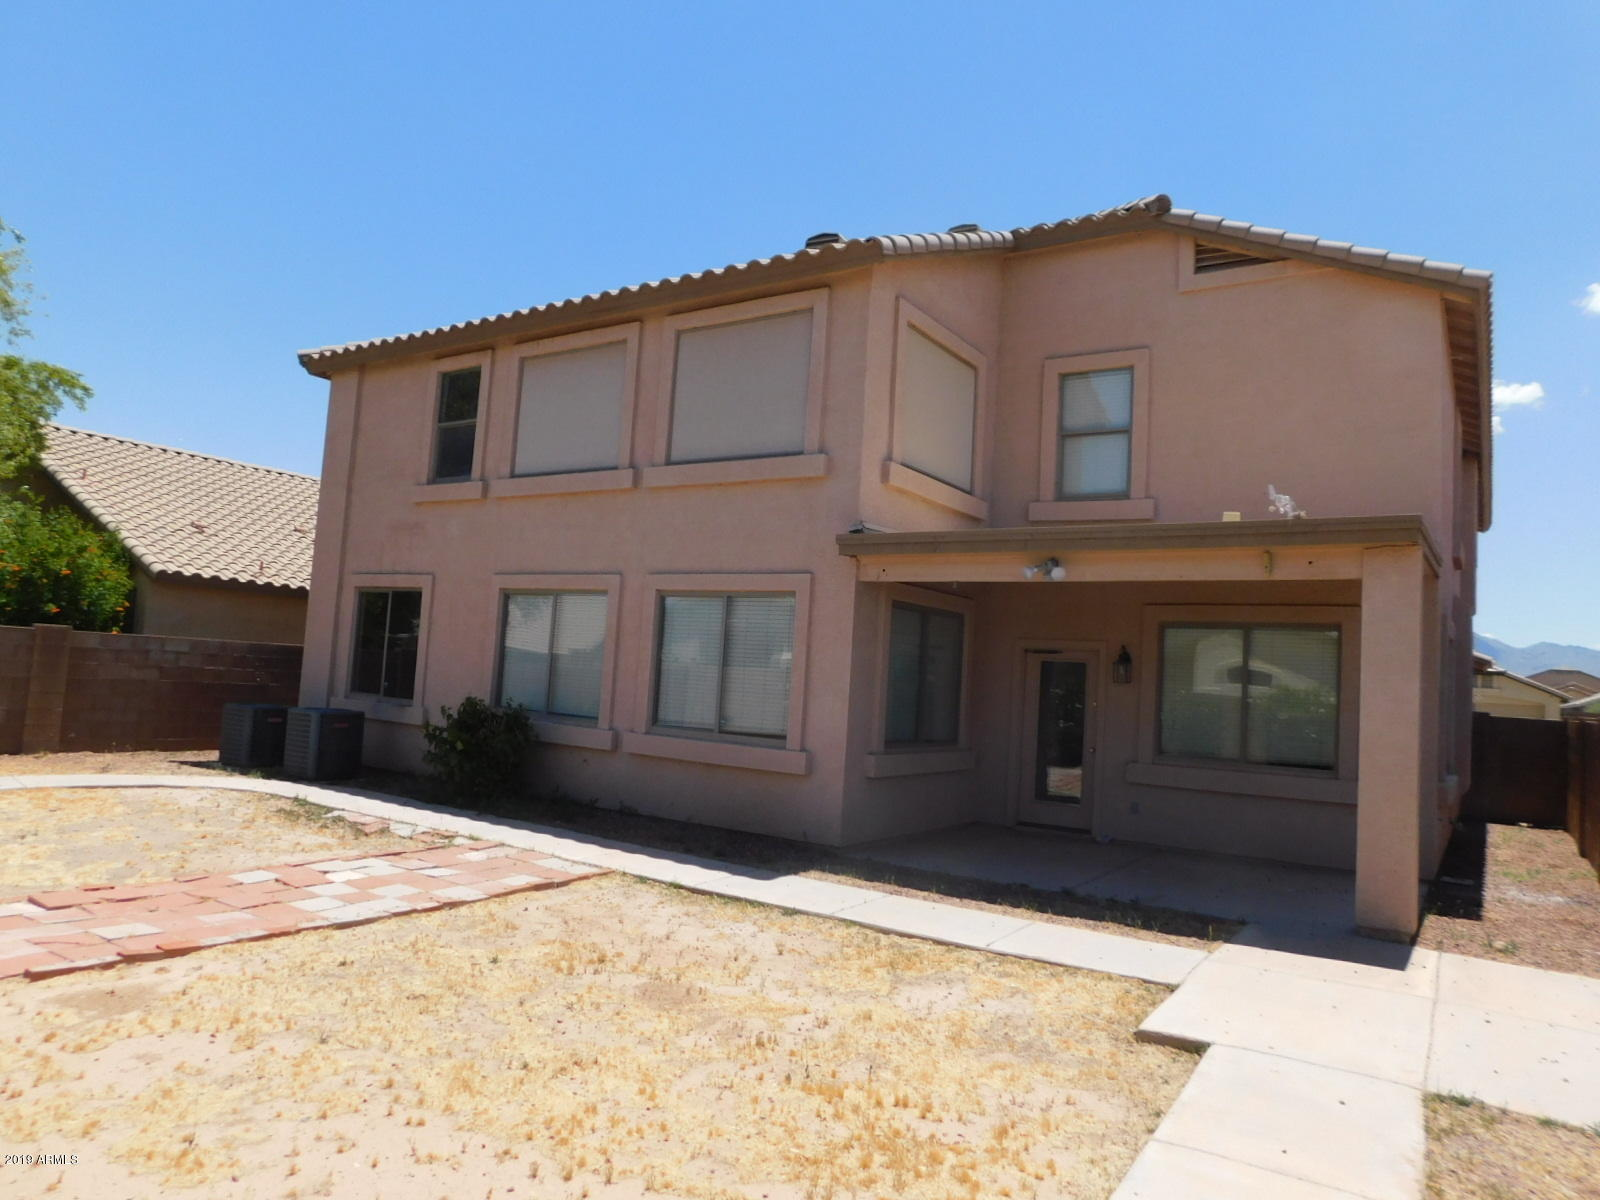 MLS 5955766 10432 W ALBENIZ Place, Tolleson, AZ 85353 Tolleson AZ REO Bank Owned Foreclosure